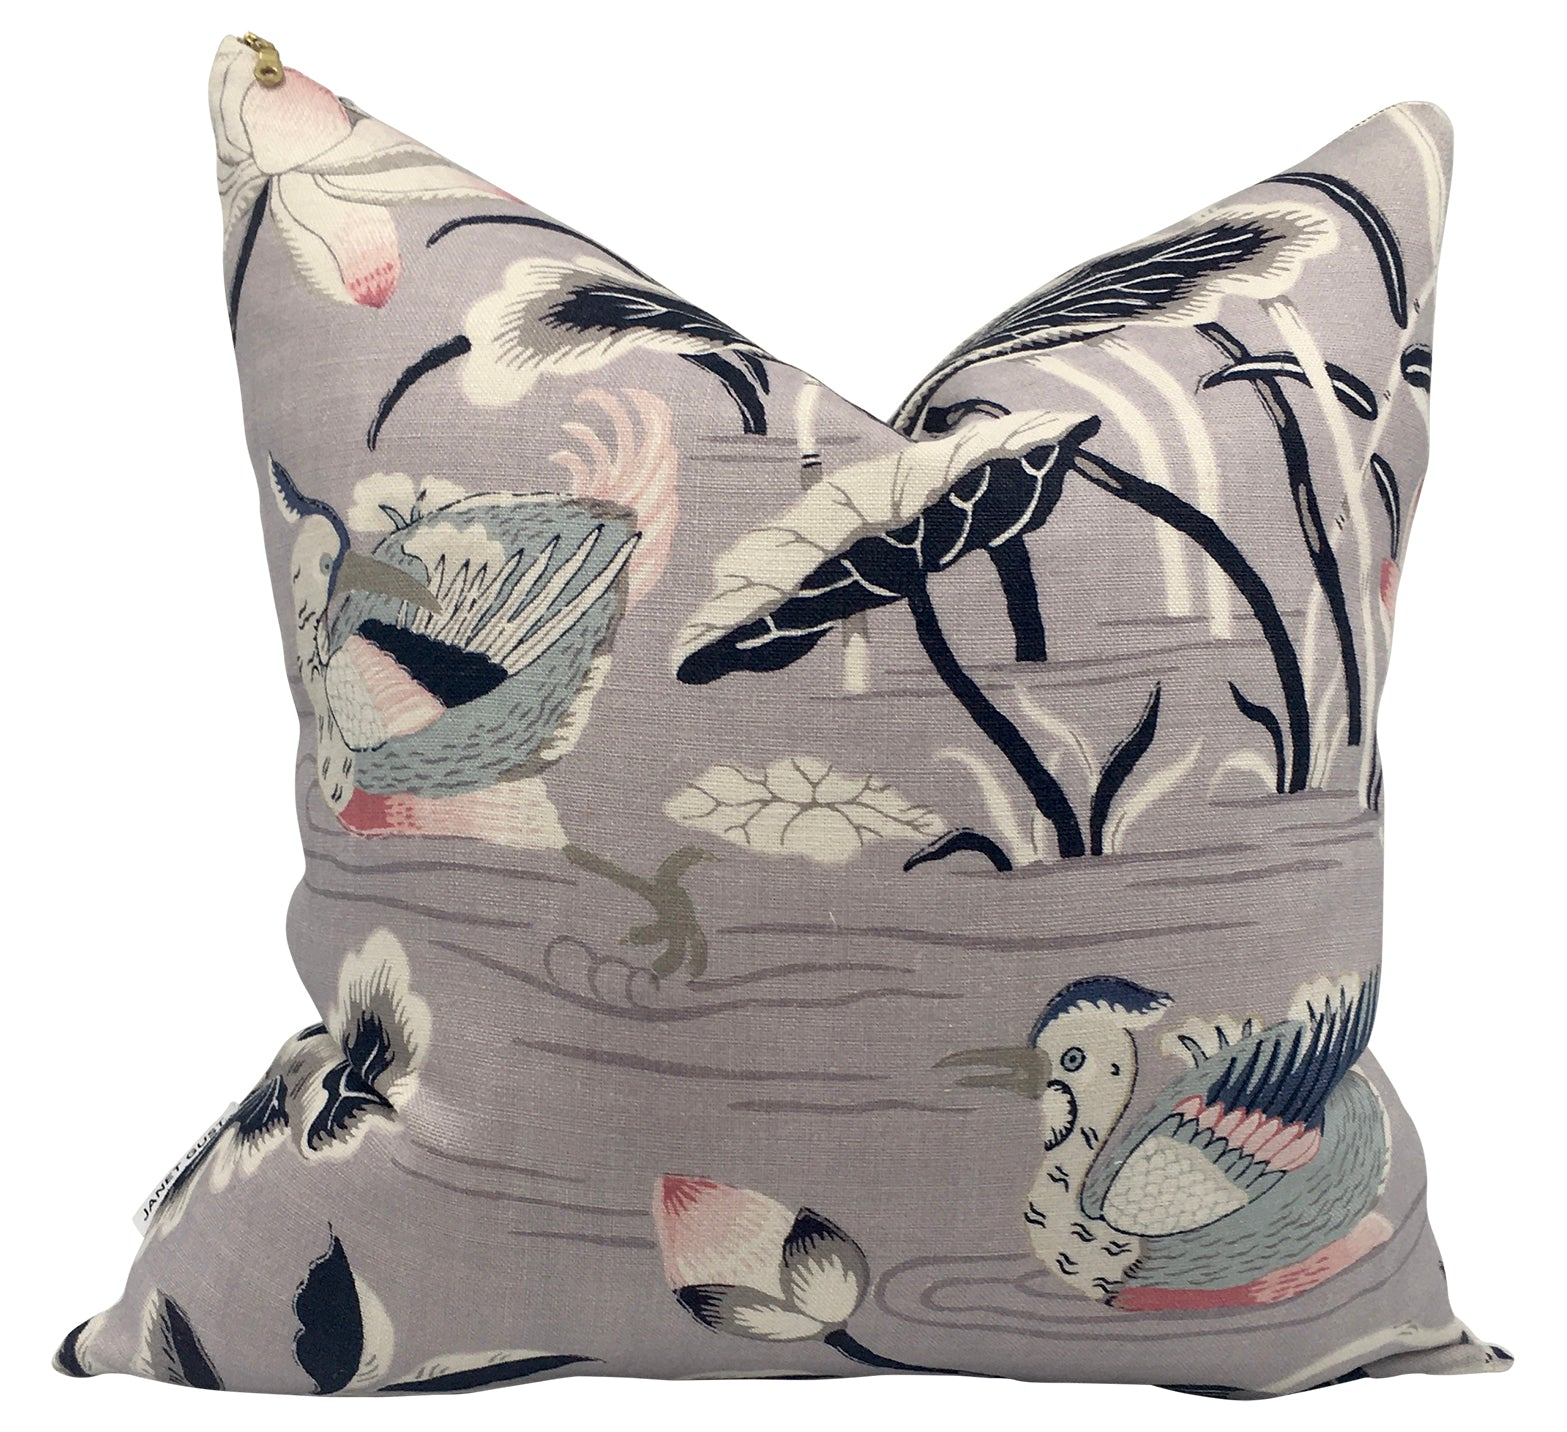 Lavender & Navy Storks Pillow